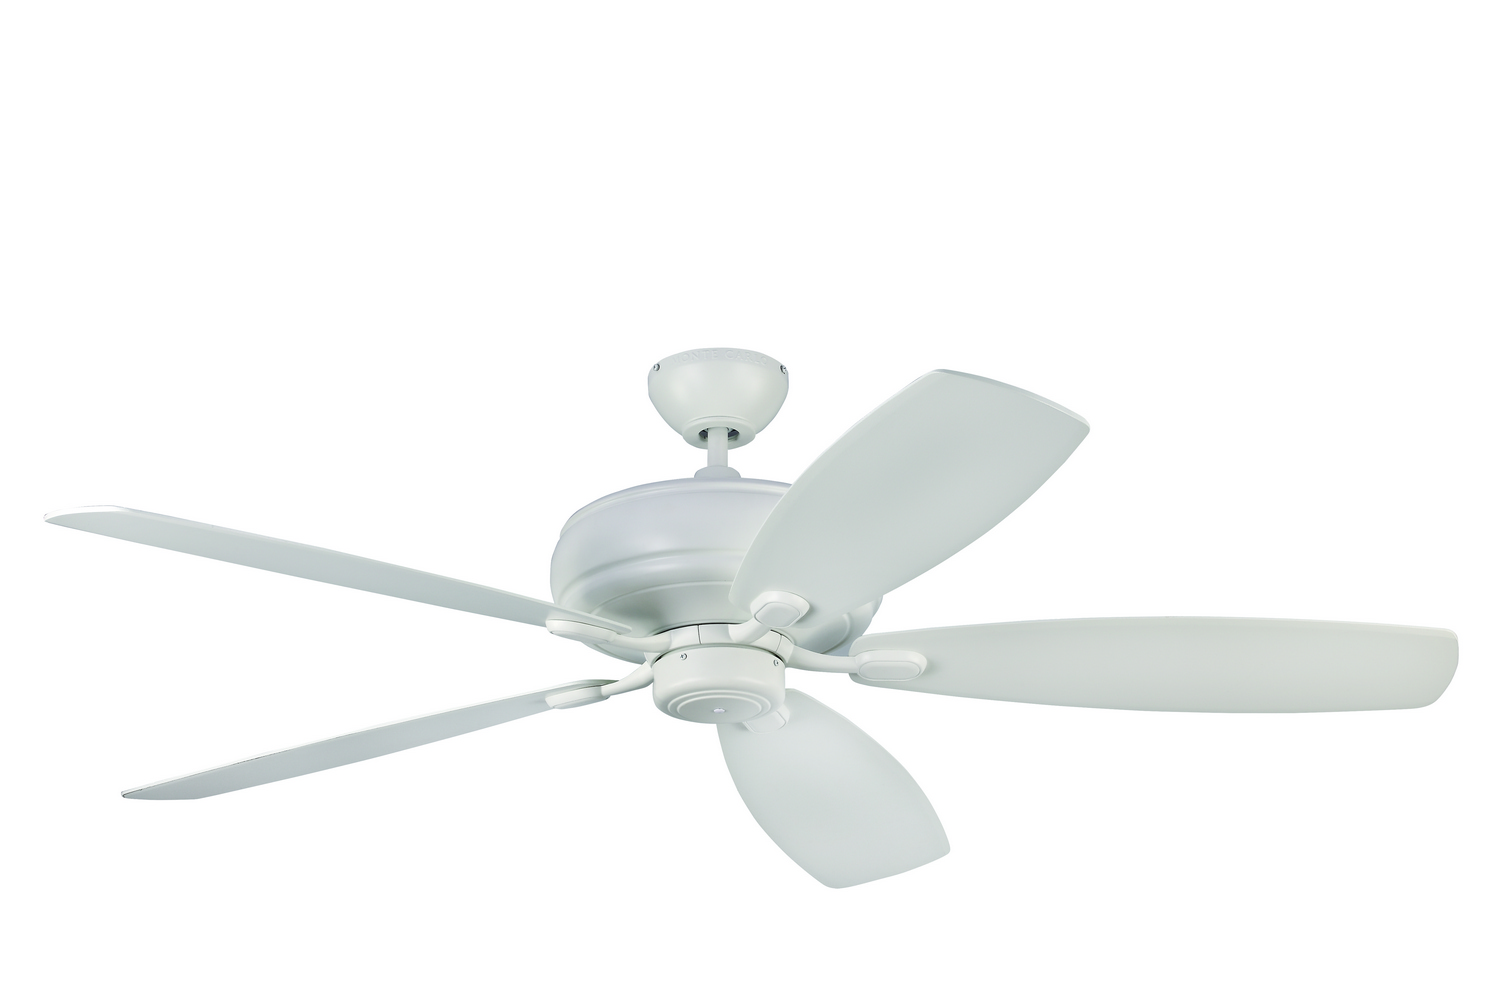 60 inch Ceiling Fan from the Embassy Max collection by Monte Carlo 5EM60RZW